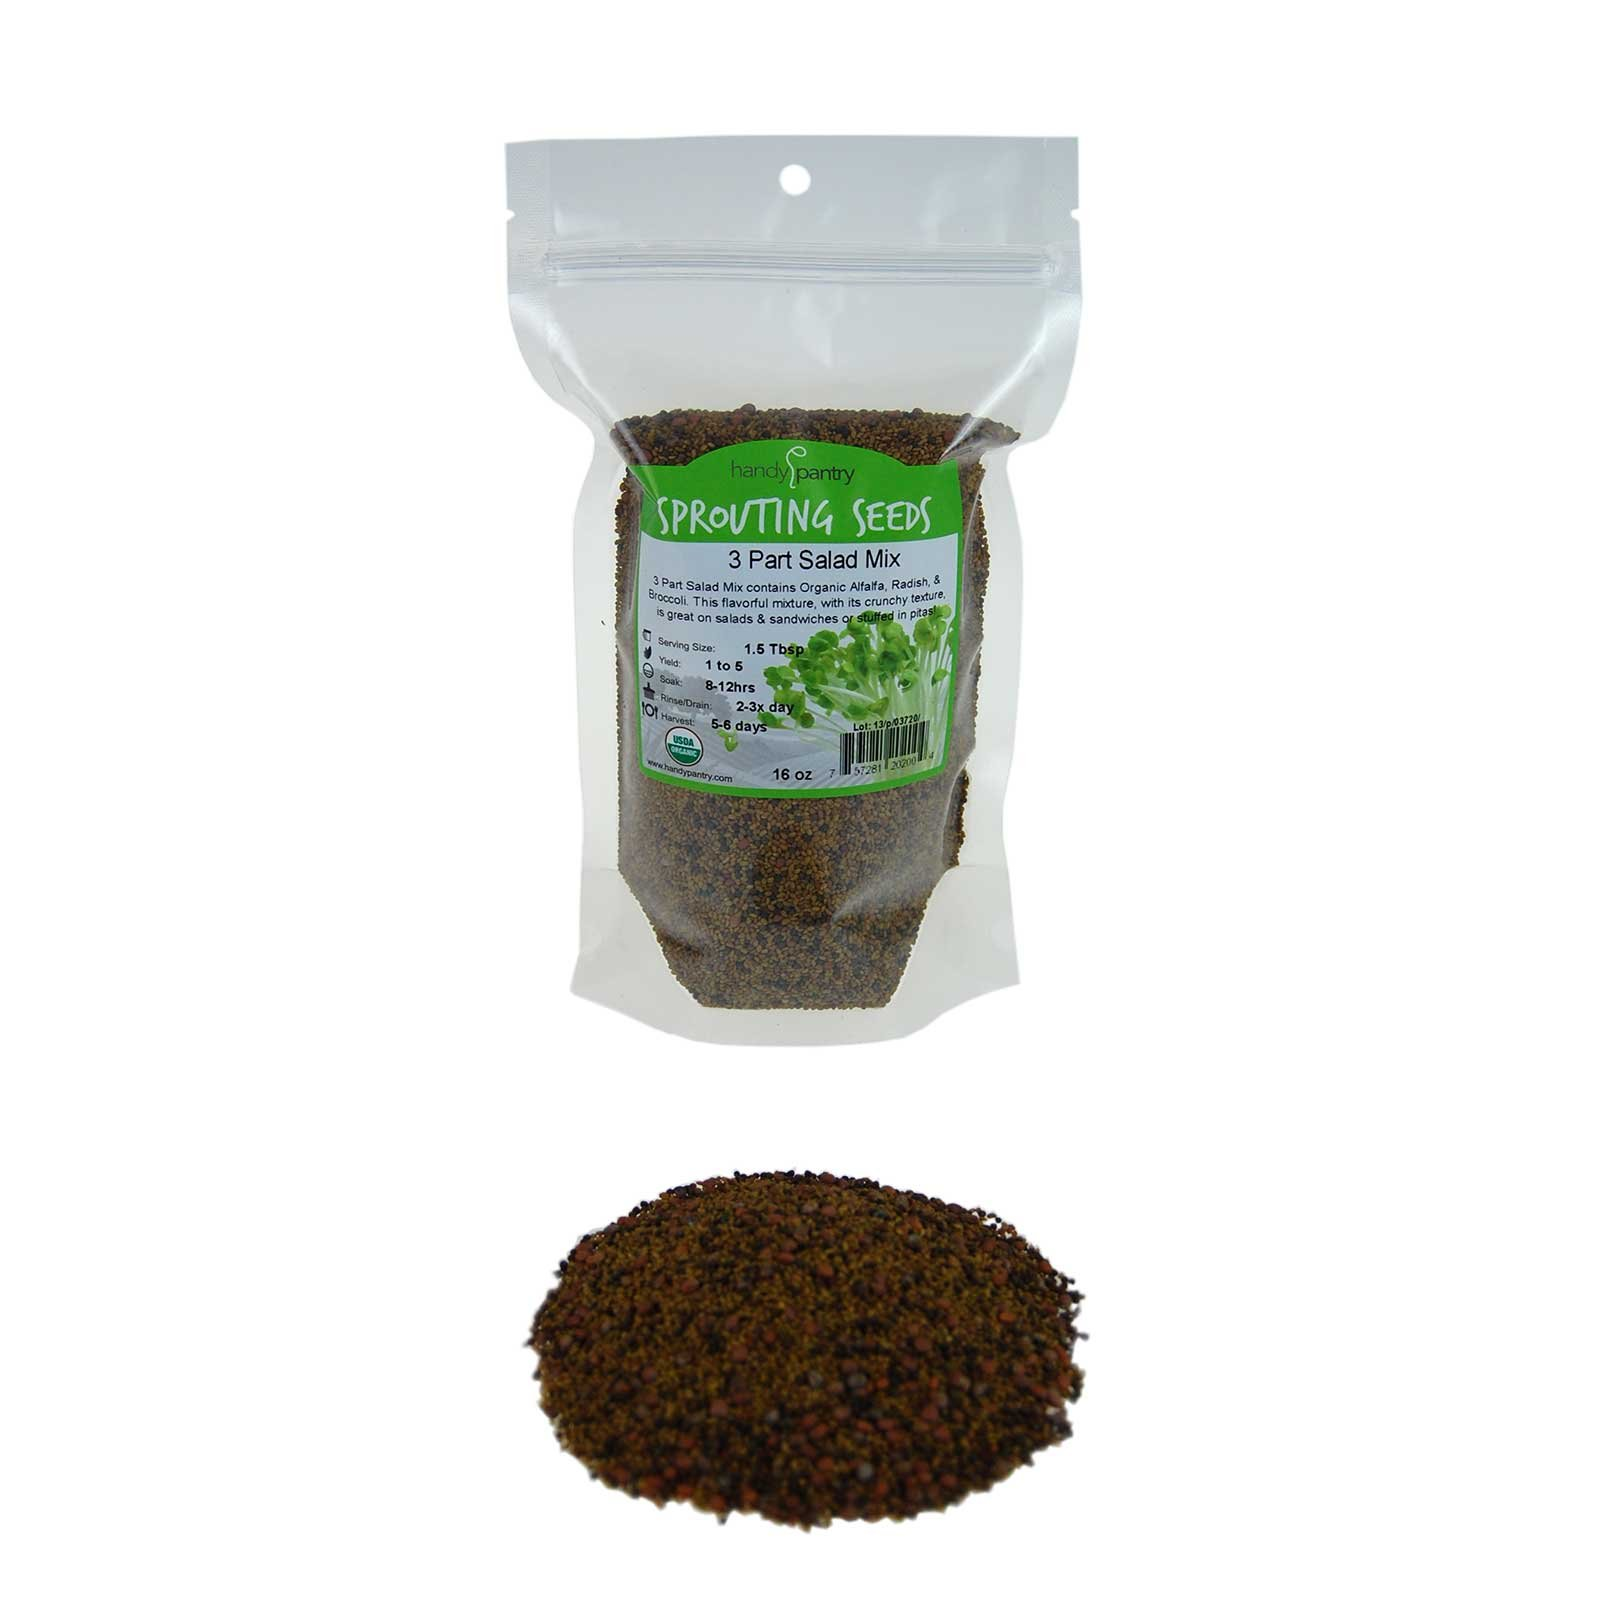 Handy Pantry 3 Part Salad Sprout Seed Mix - 1 Lbs Brand: Certified Organic Sprouting Seeds: Radish, Broccoli & Alfalfa: Cooking, Food Storage or Delicious Salad Sprouts by Handy Pantry